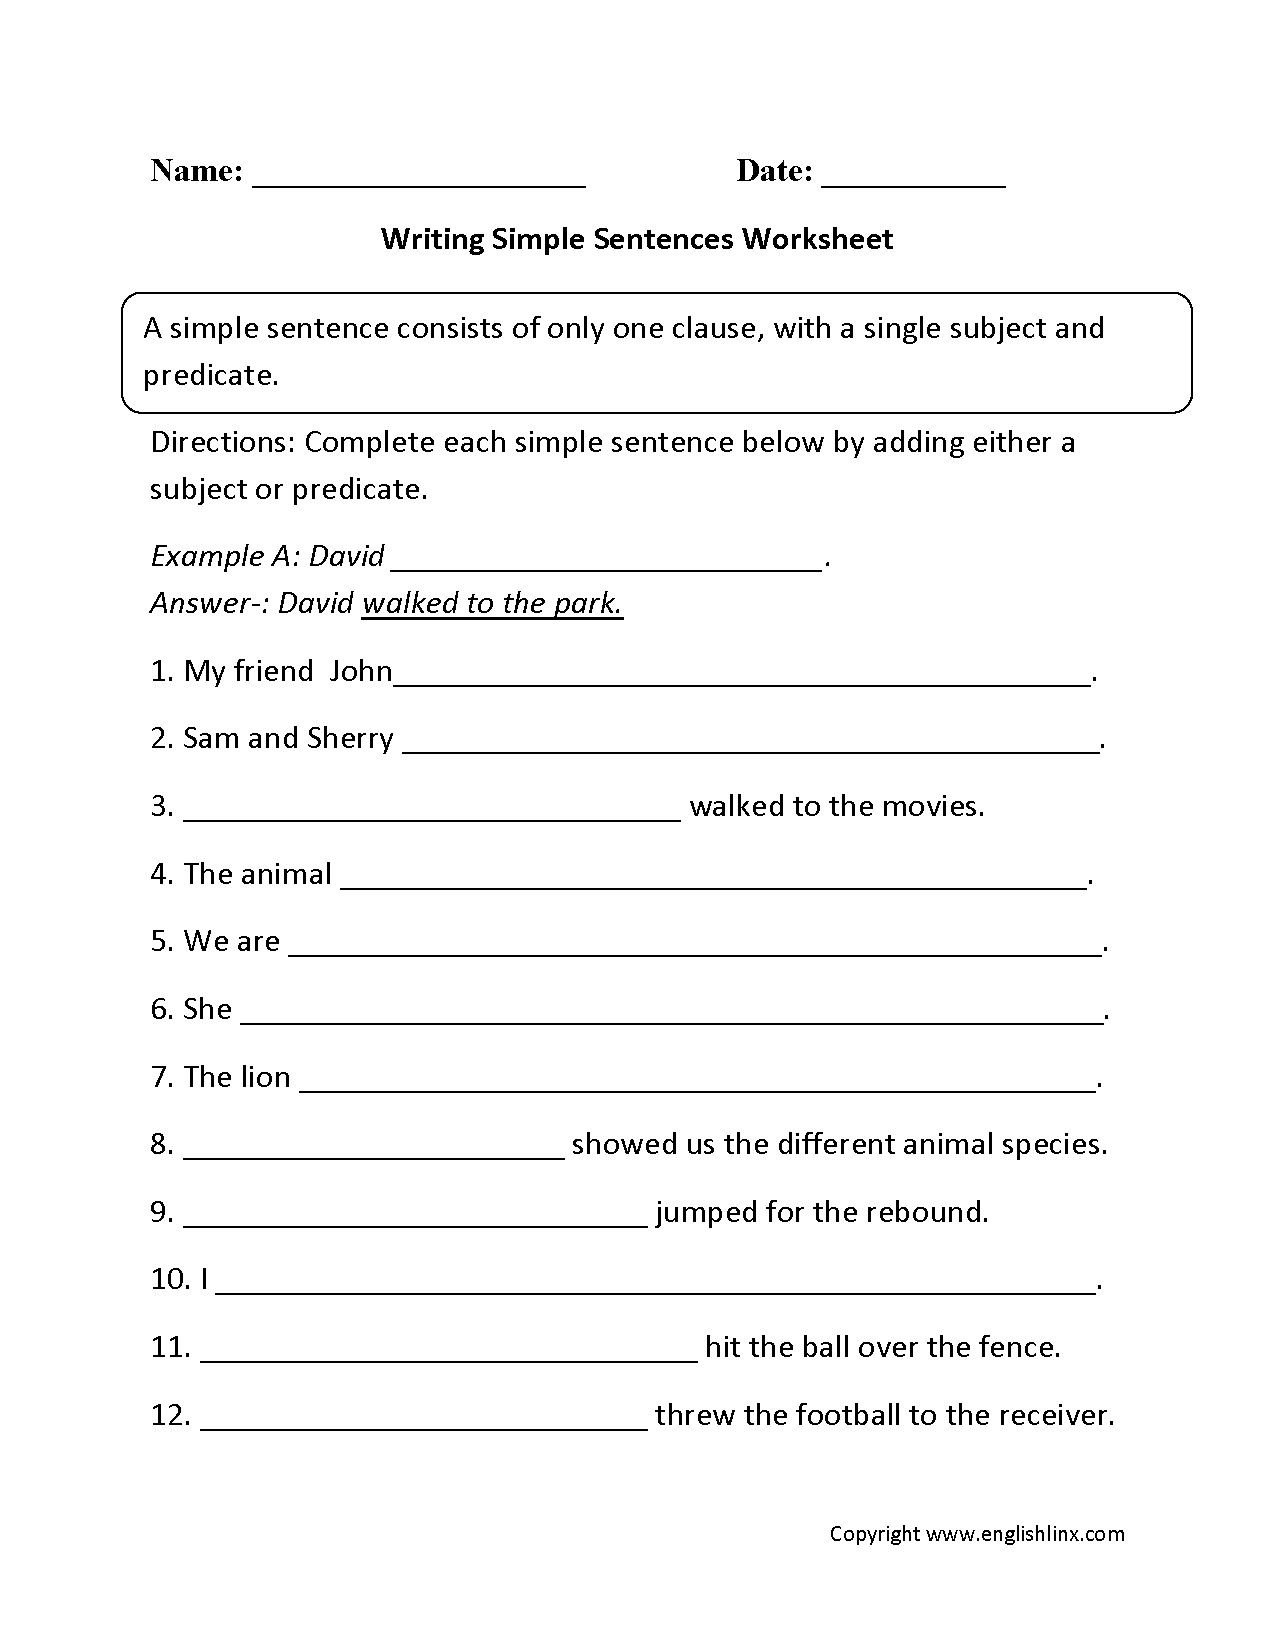 Free Printable Sentence Writing Worksheets In